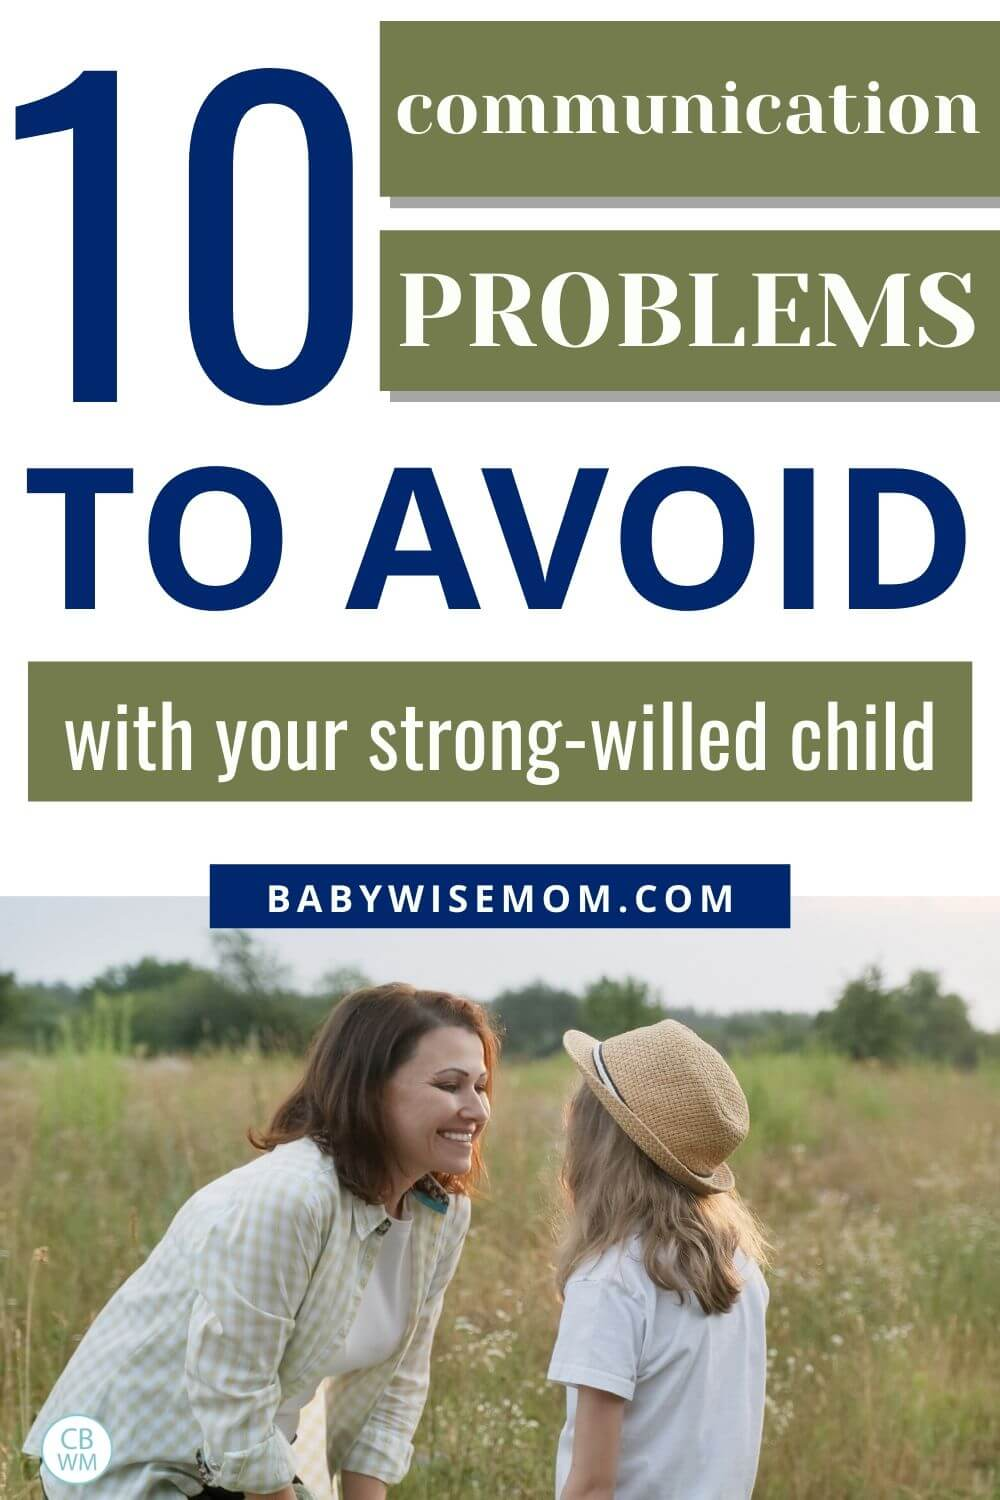 10 communication problems to avoid with your strong-willed child